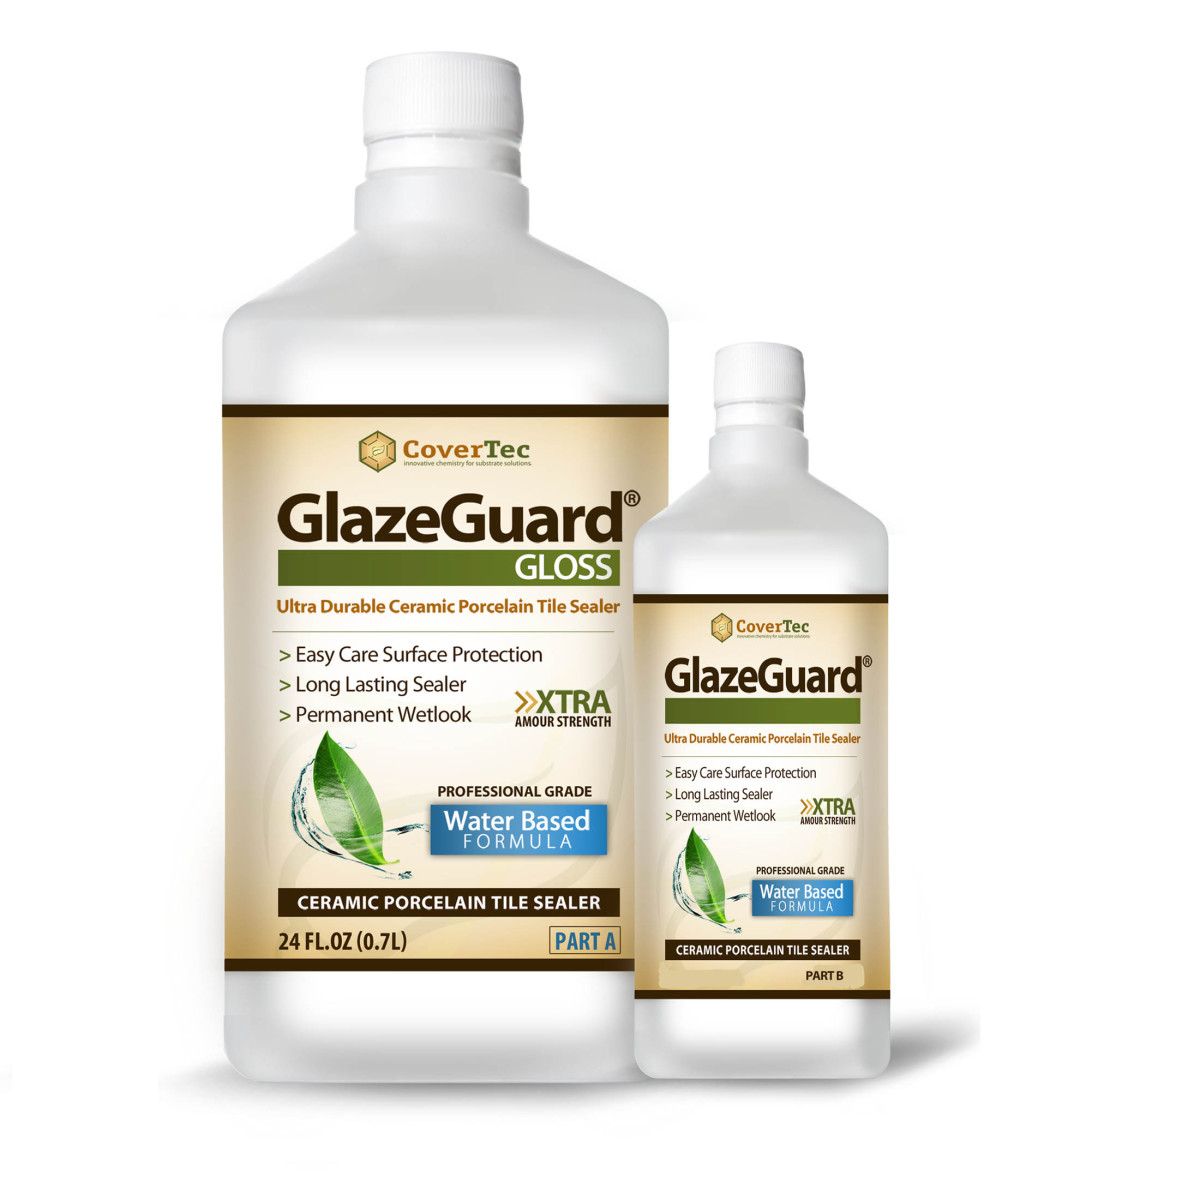 GlazeGuard Gloss Floor / Wall Sealer for Ceramic, Porcelain, Stone Tile Surfaces (1 Qrt -Prof Grade (2) Part Kit)